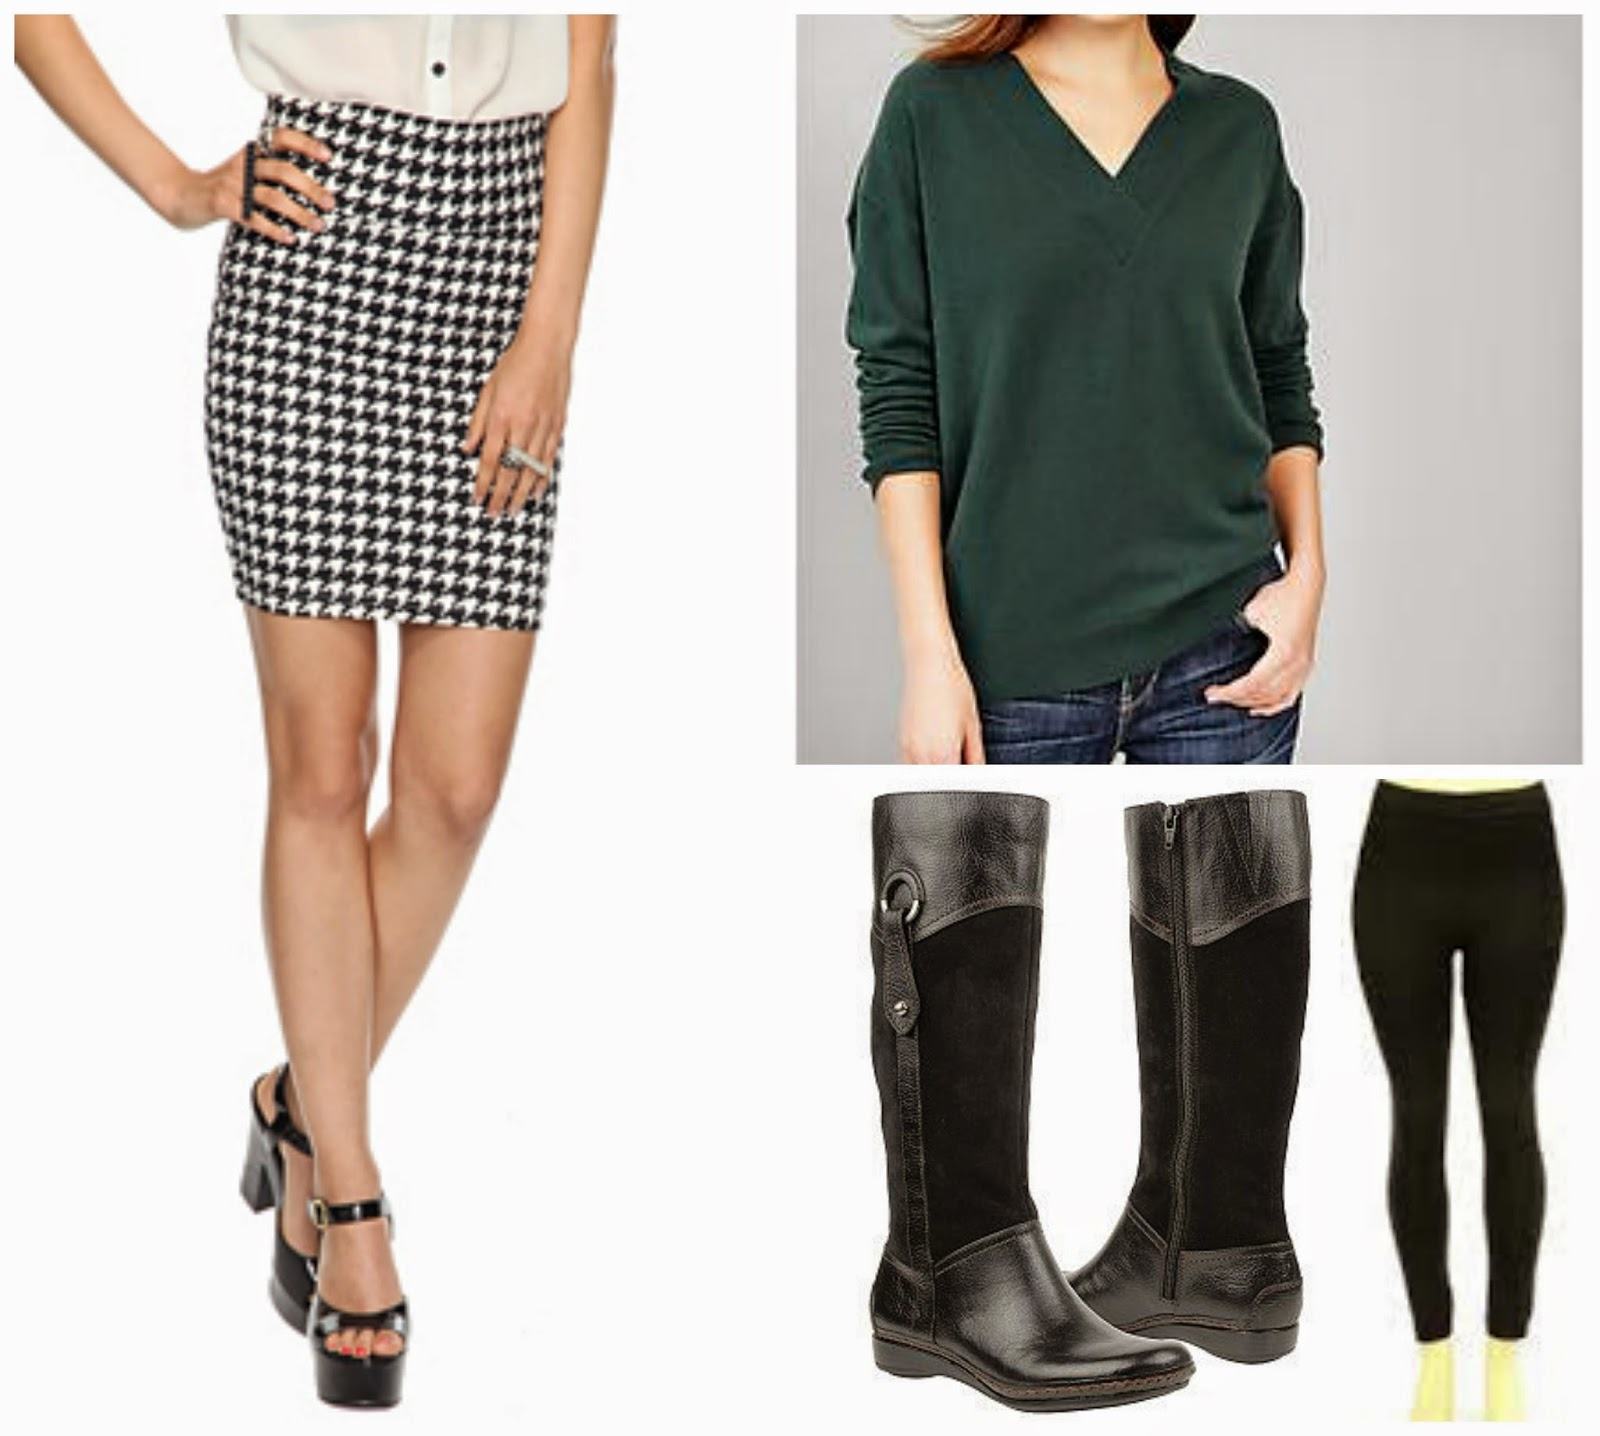 houndstooth skirt, green sweater, leggings, and boots